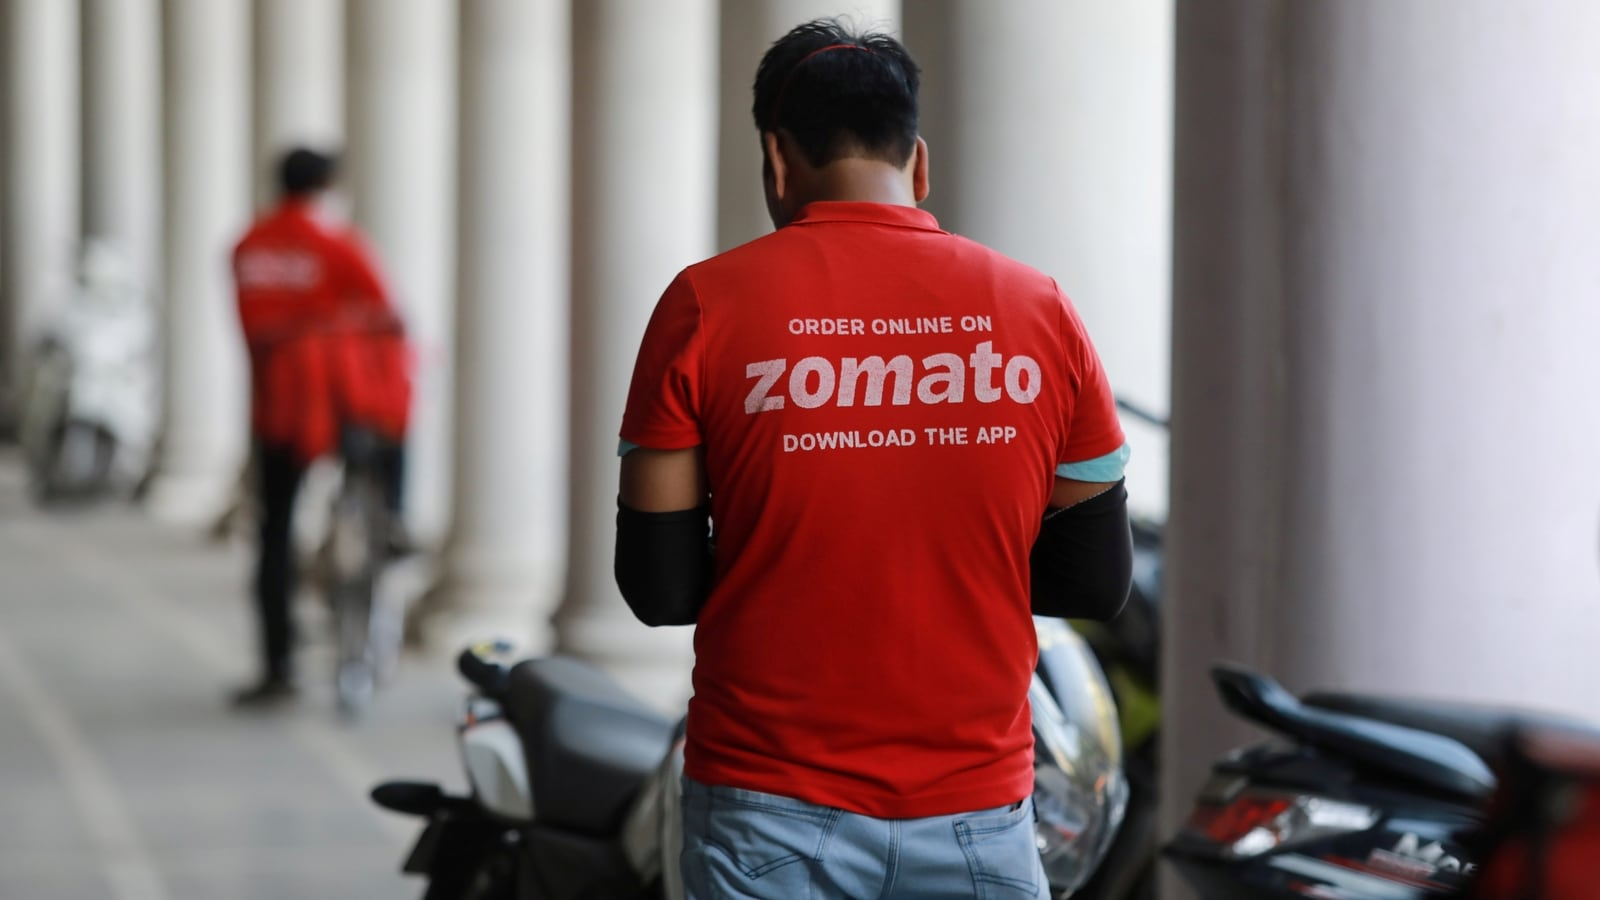 Zomato eyes grocery delivery business as it seeks to buy stake in Grofers  India - Hindustan Times